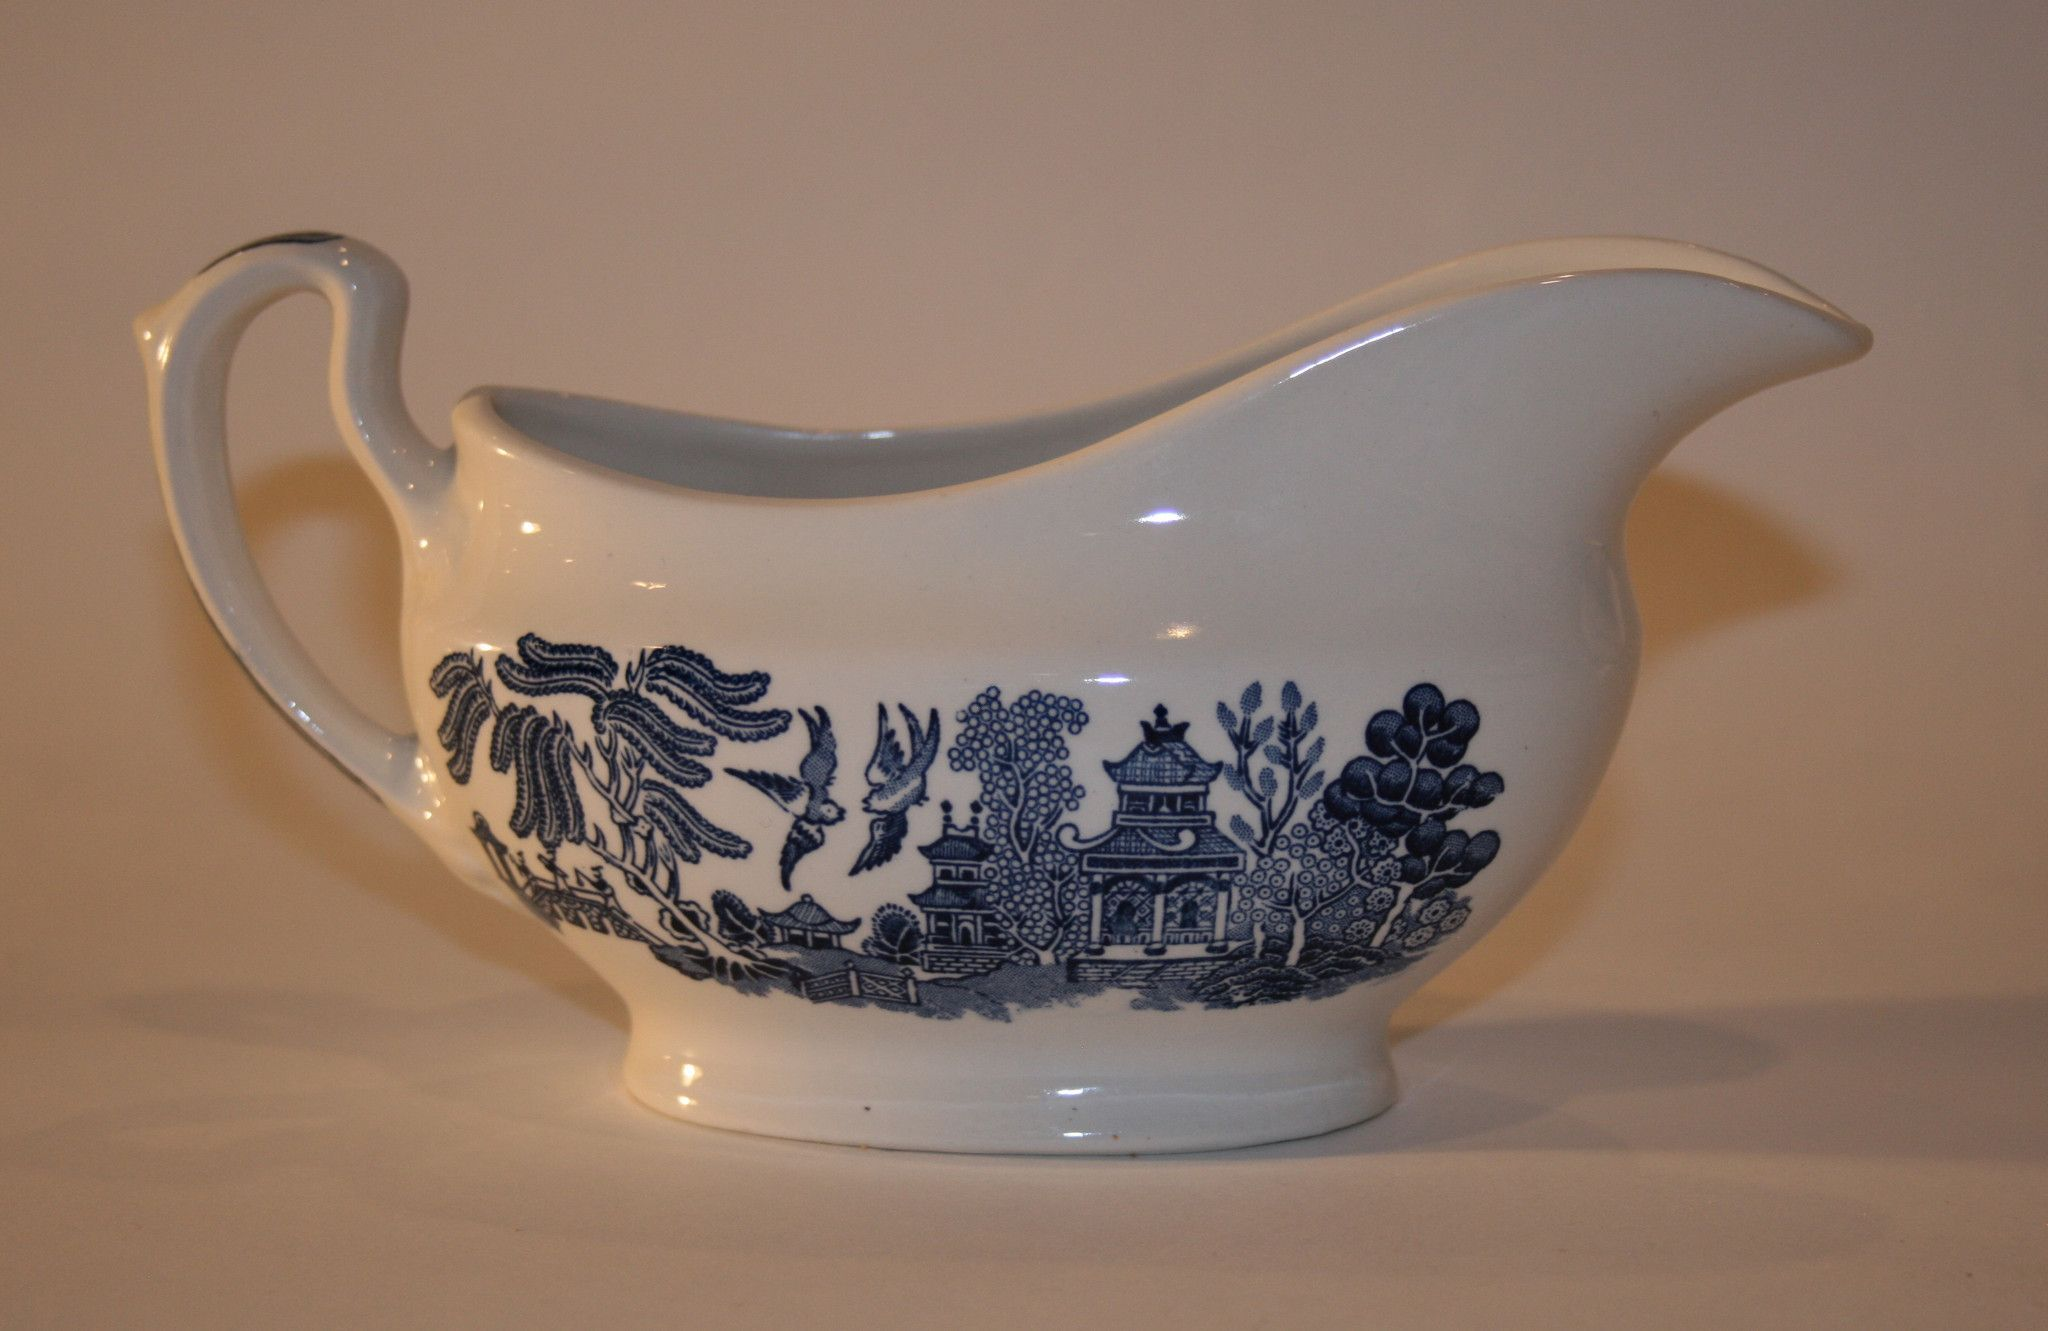 Blue Willow Churchill Pattern by England Staffordshire. Signed 18 Staffordshire England. Fine English Tableware & Staffordshire Gravy Boat | Gravy boats Georgian and Tablewares